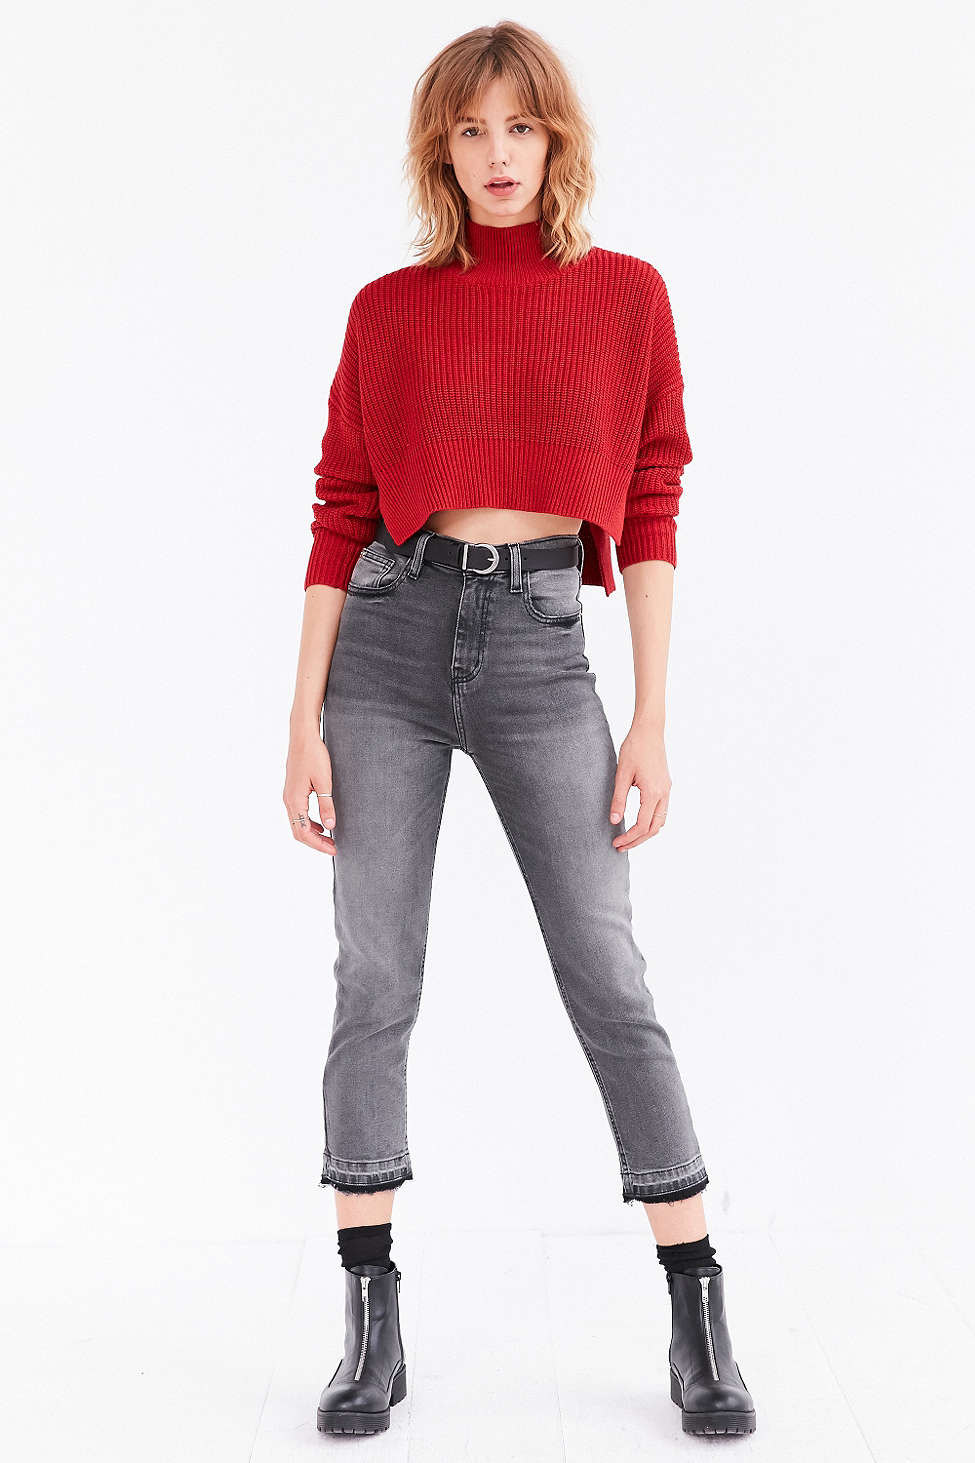 grayd-skinny-jeans-red-sweater-crop-belt-black-shoe-booties-wear-fashion-style-fall-winter-hairr-lunch.jpg